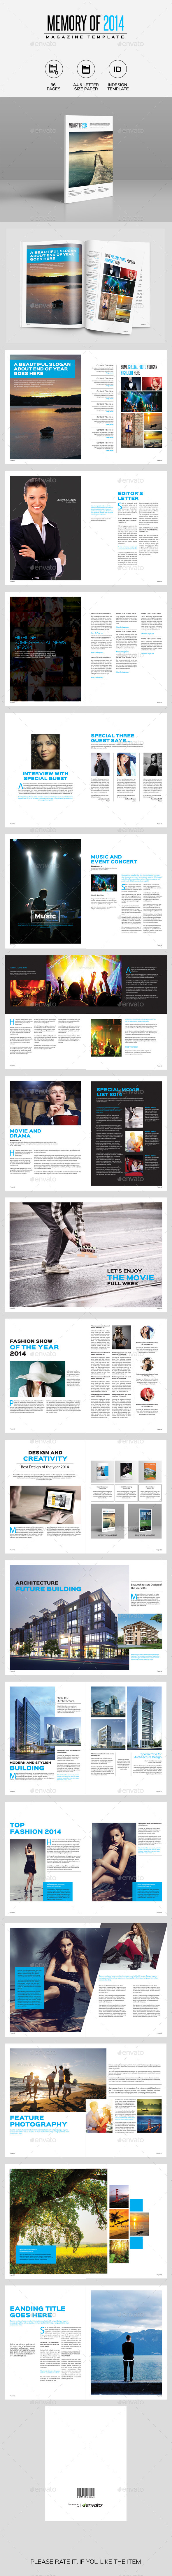 GraphicRiver Memory of 2014 Magazine 9977690